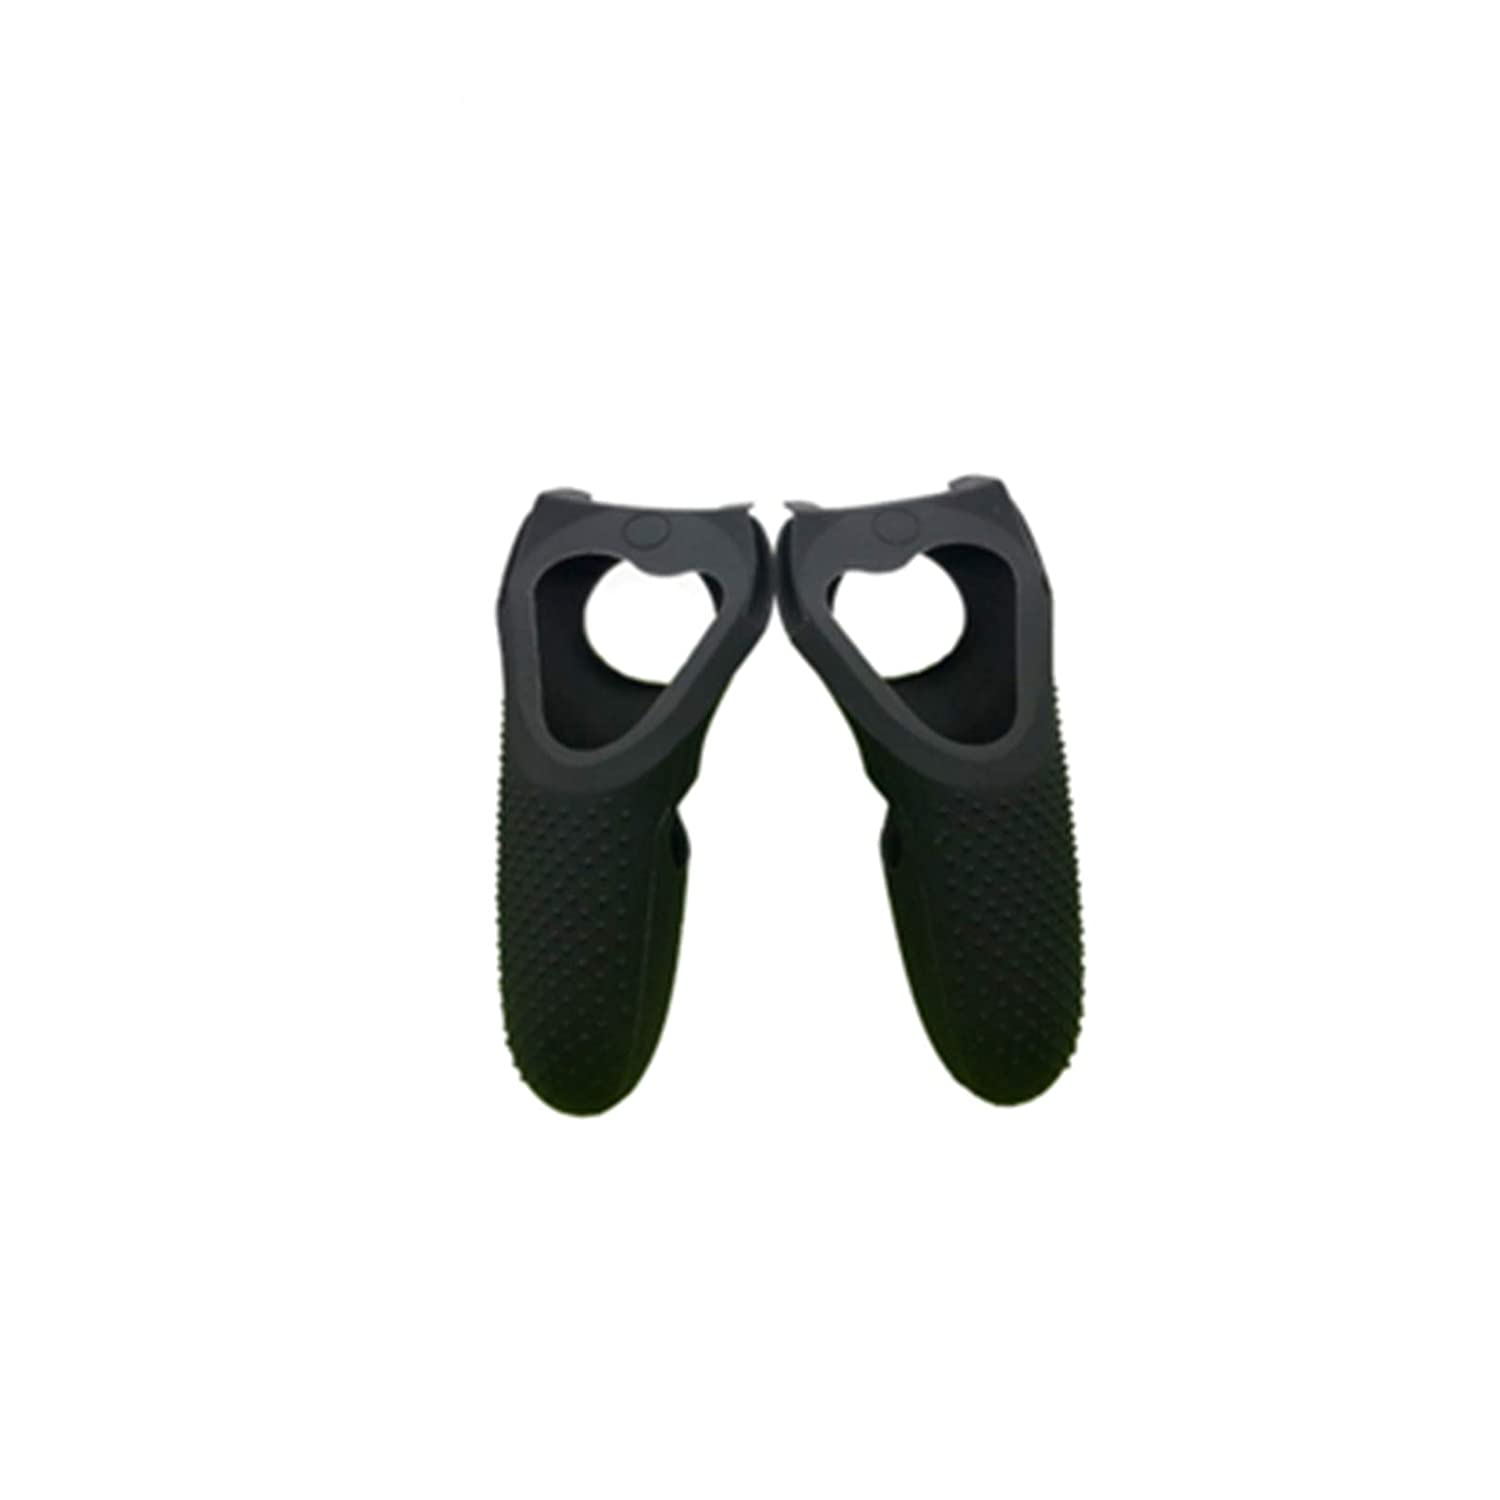 LICHIFIT Soft Anti-Sweat Silicone VR Eye Mask Cover para Oculus Quest VR Headset Lavable Anti-Fuga Bloqueo de luz Eye Cover Unisex